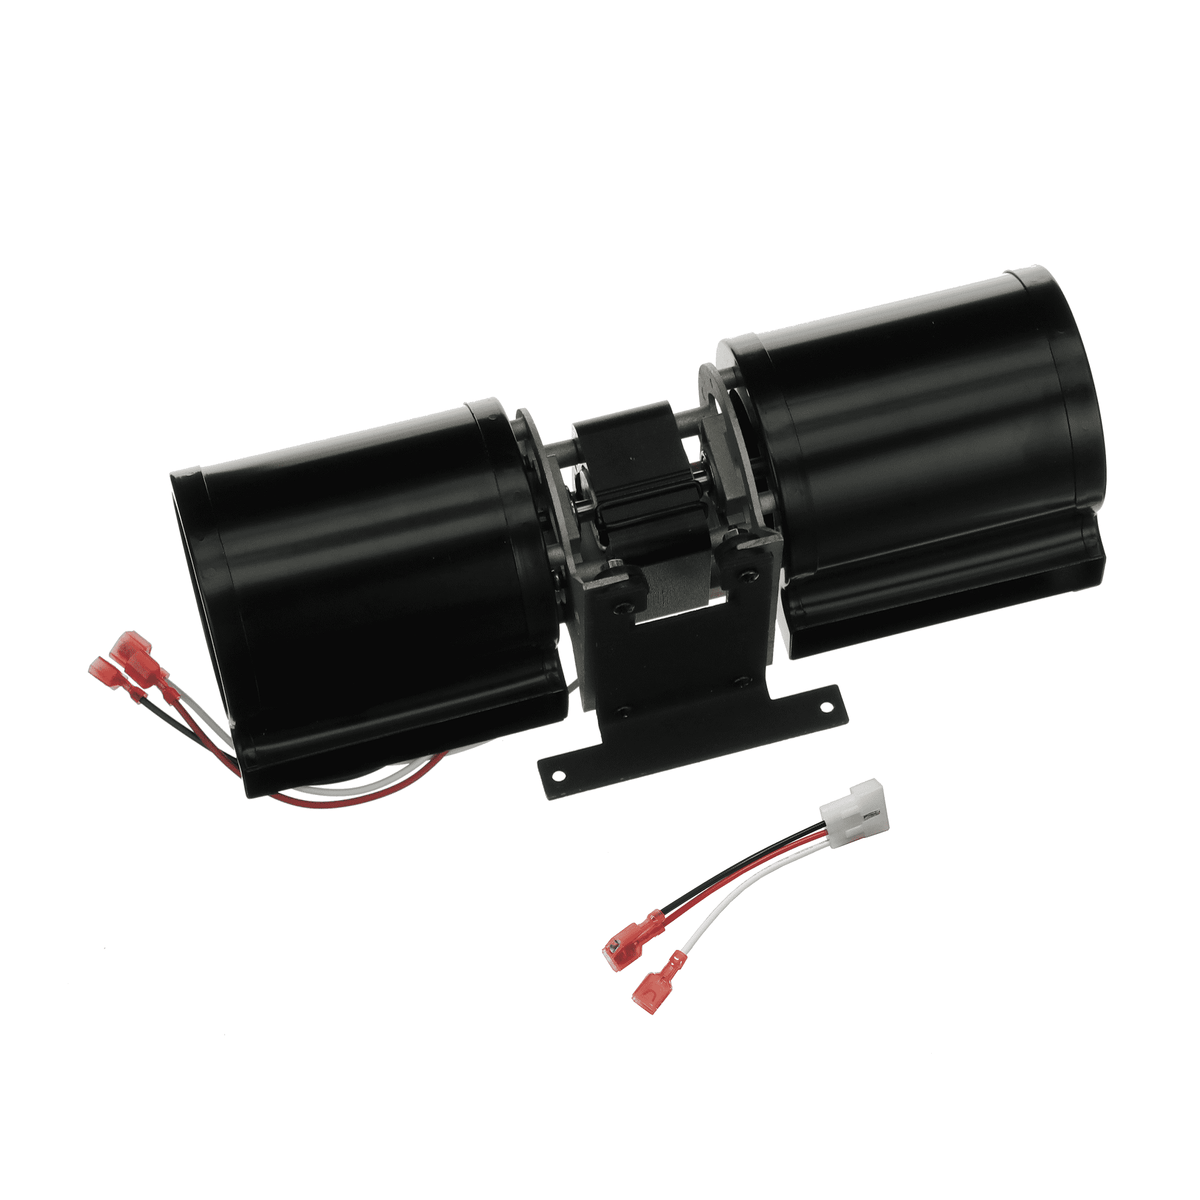 Quadra-Fire Convection Blower For Classic Bay 1200 Part